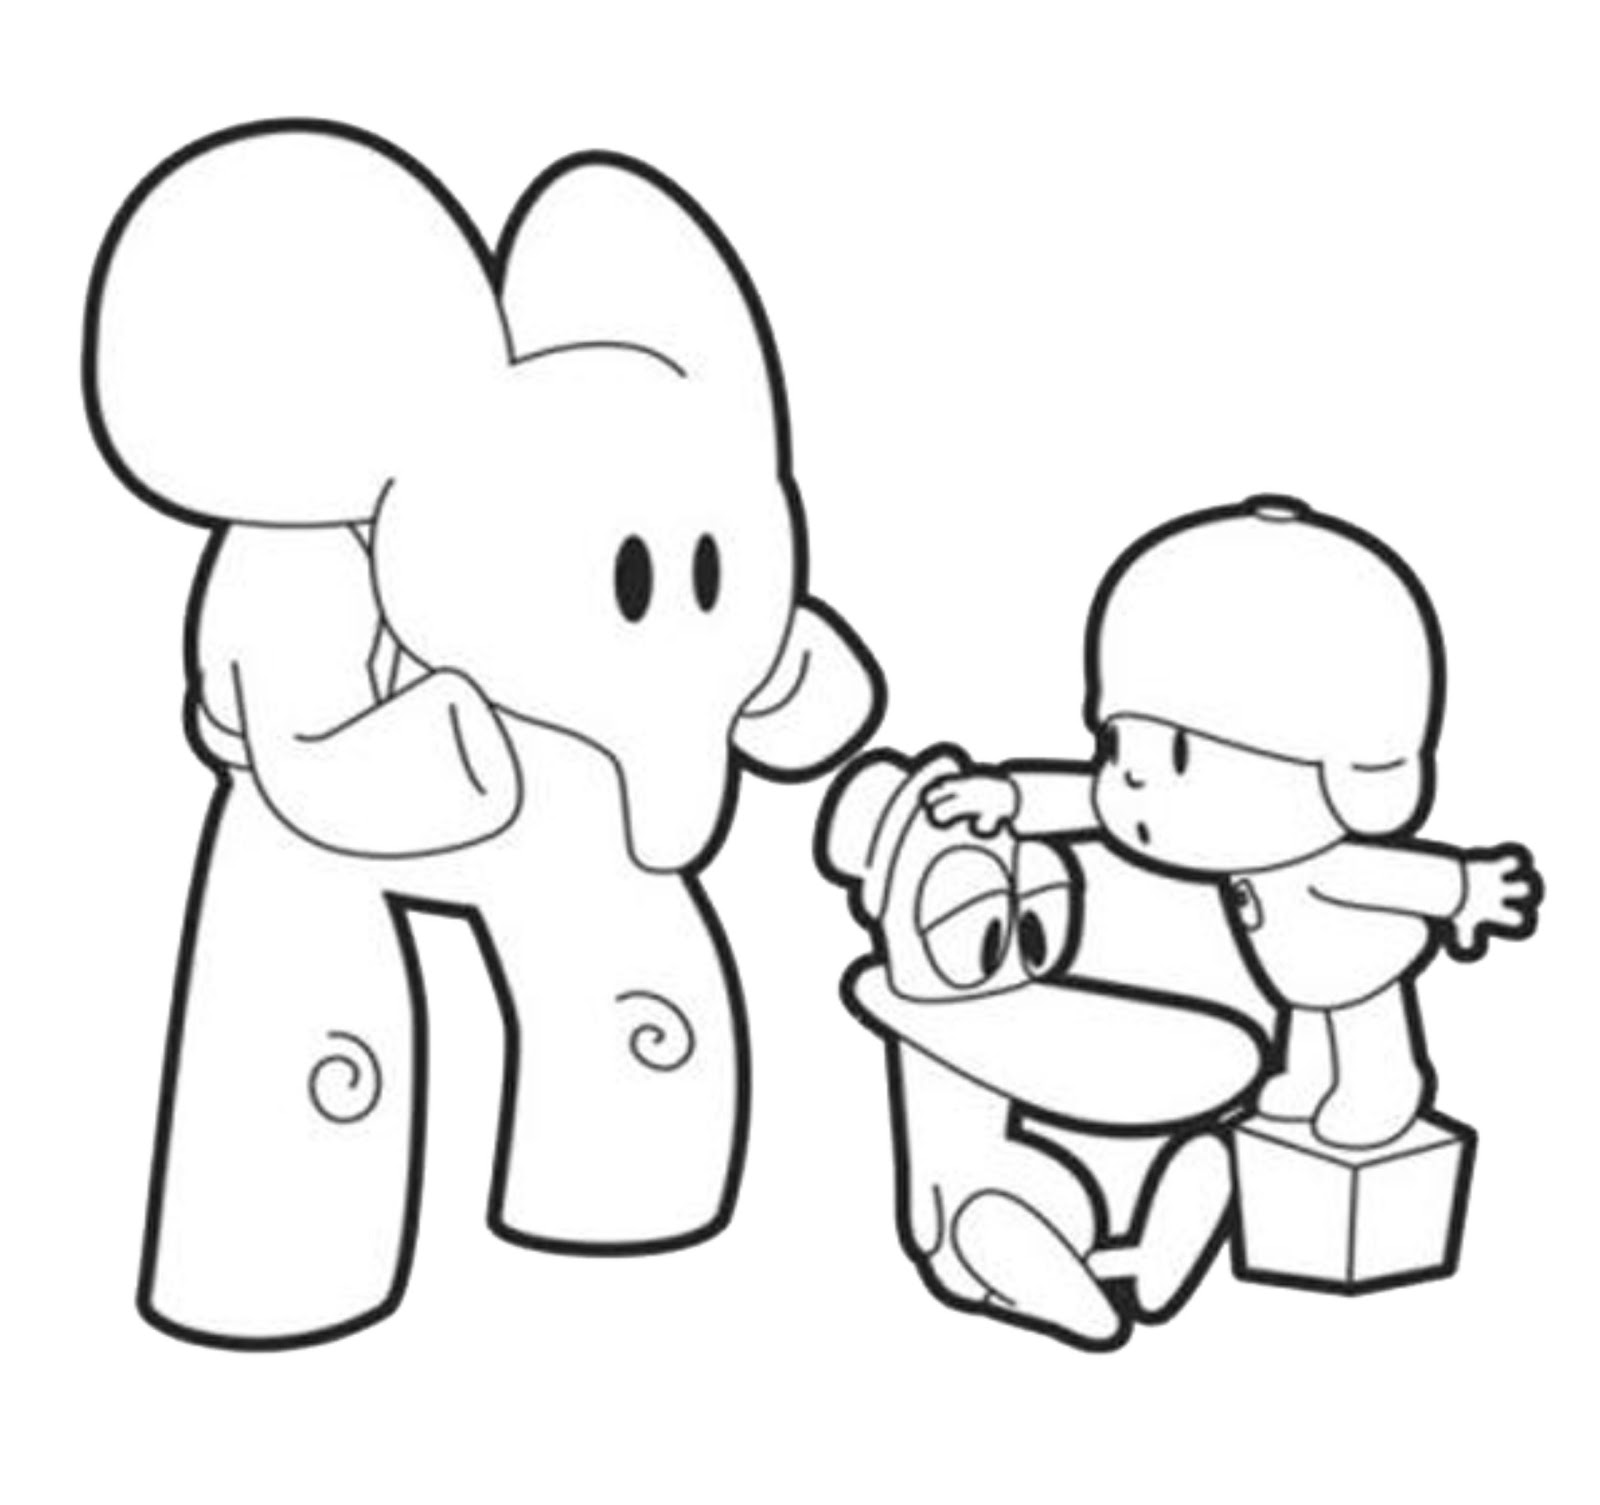 pocoyo coloring images - reverse search - Pocoyo Friends Coloring Pages